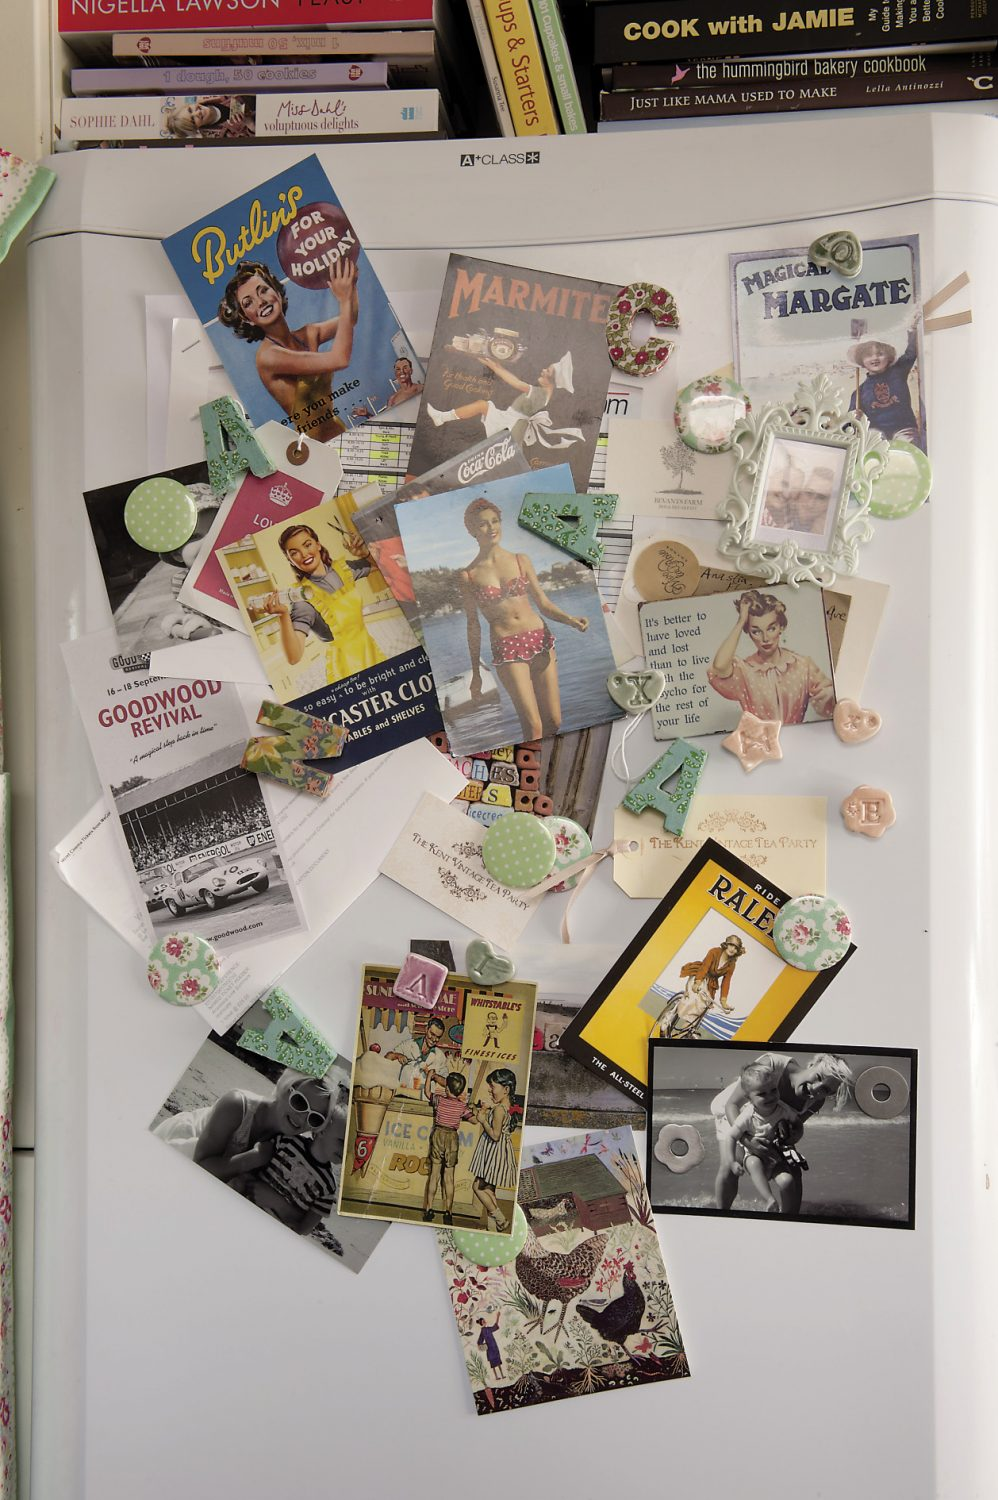 The fridge is covered in vintage postcards, photographs and seaside nostalgia